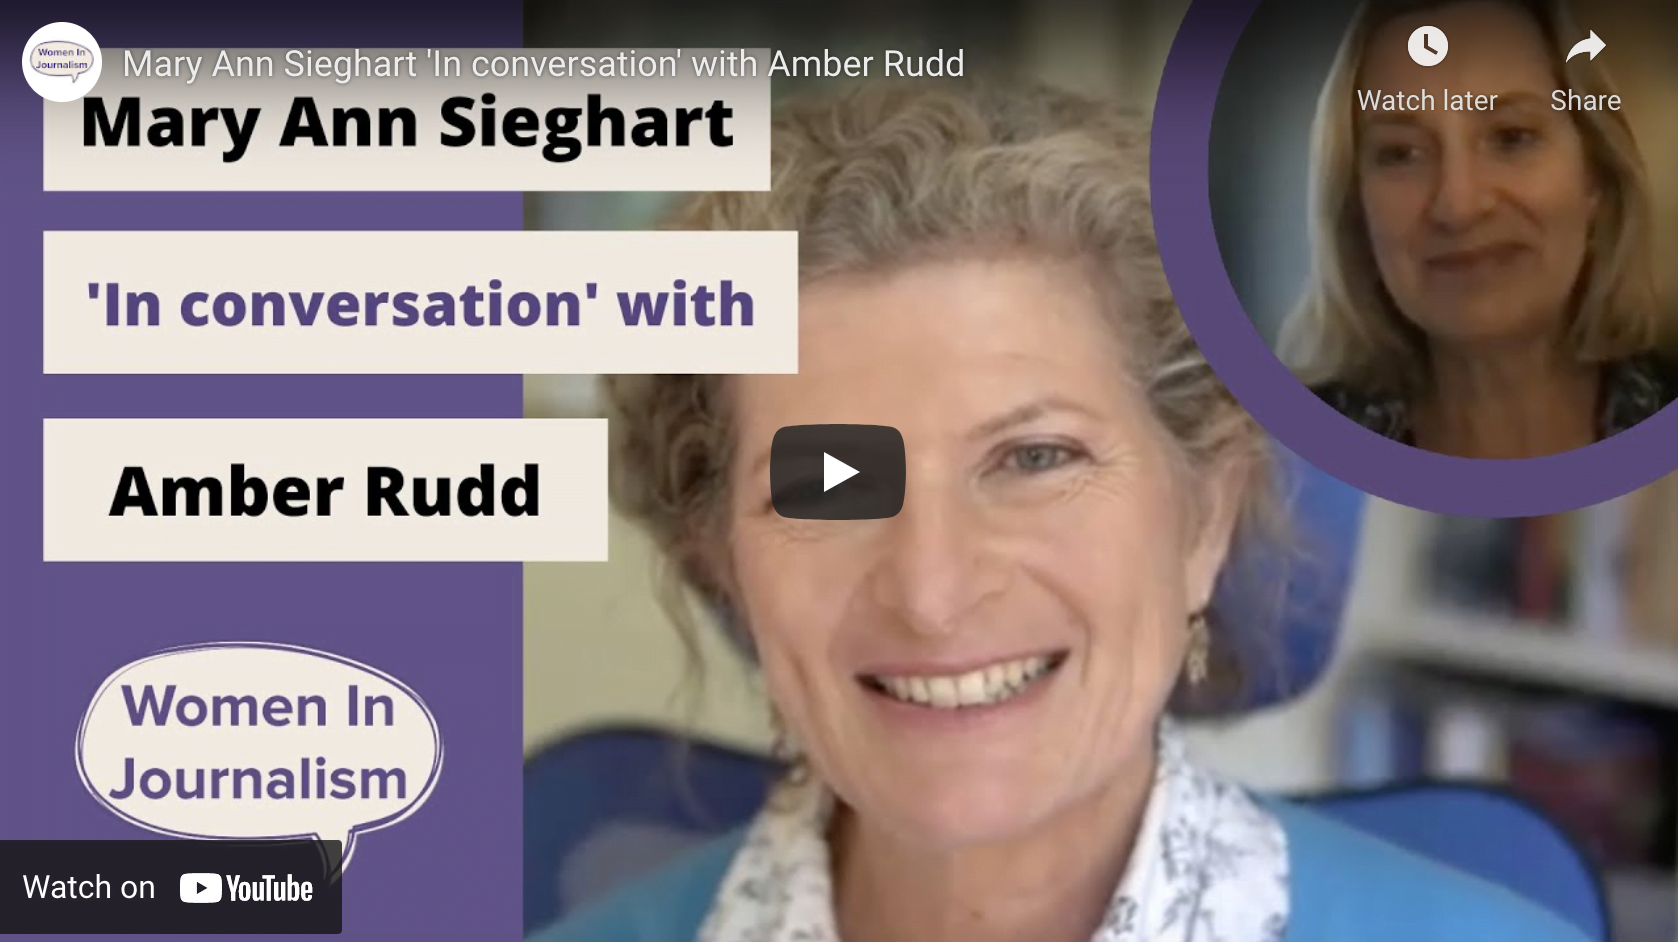 In conversation with Amber Rudd